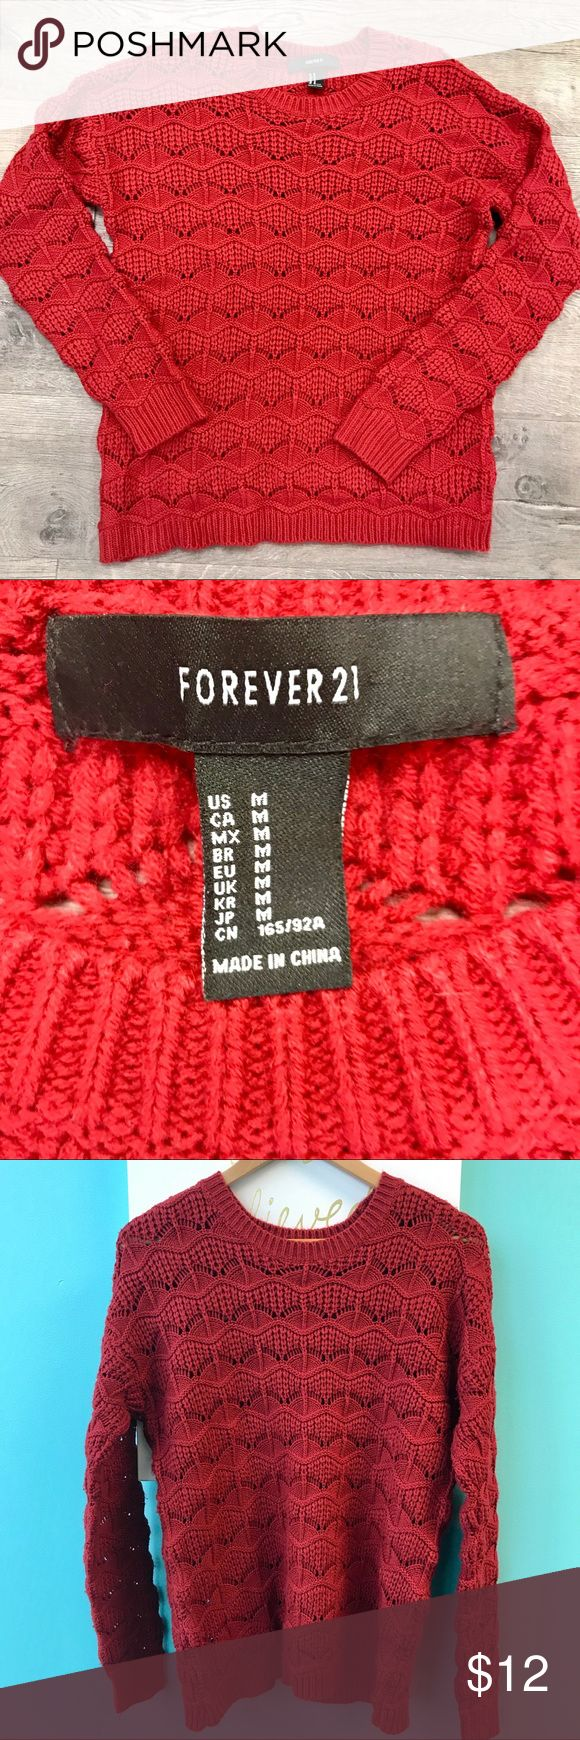 Forever 21 Red Knit Sweater Super soft, deep red Knit Sweater by Forever 21.  Price reflects some pilling to be expected in a cotton blend. Forever 21 Sweaters Crew & Scoop Necks